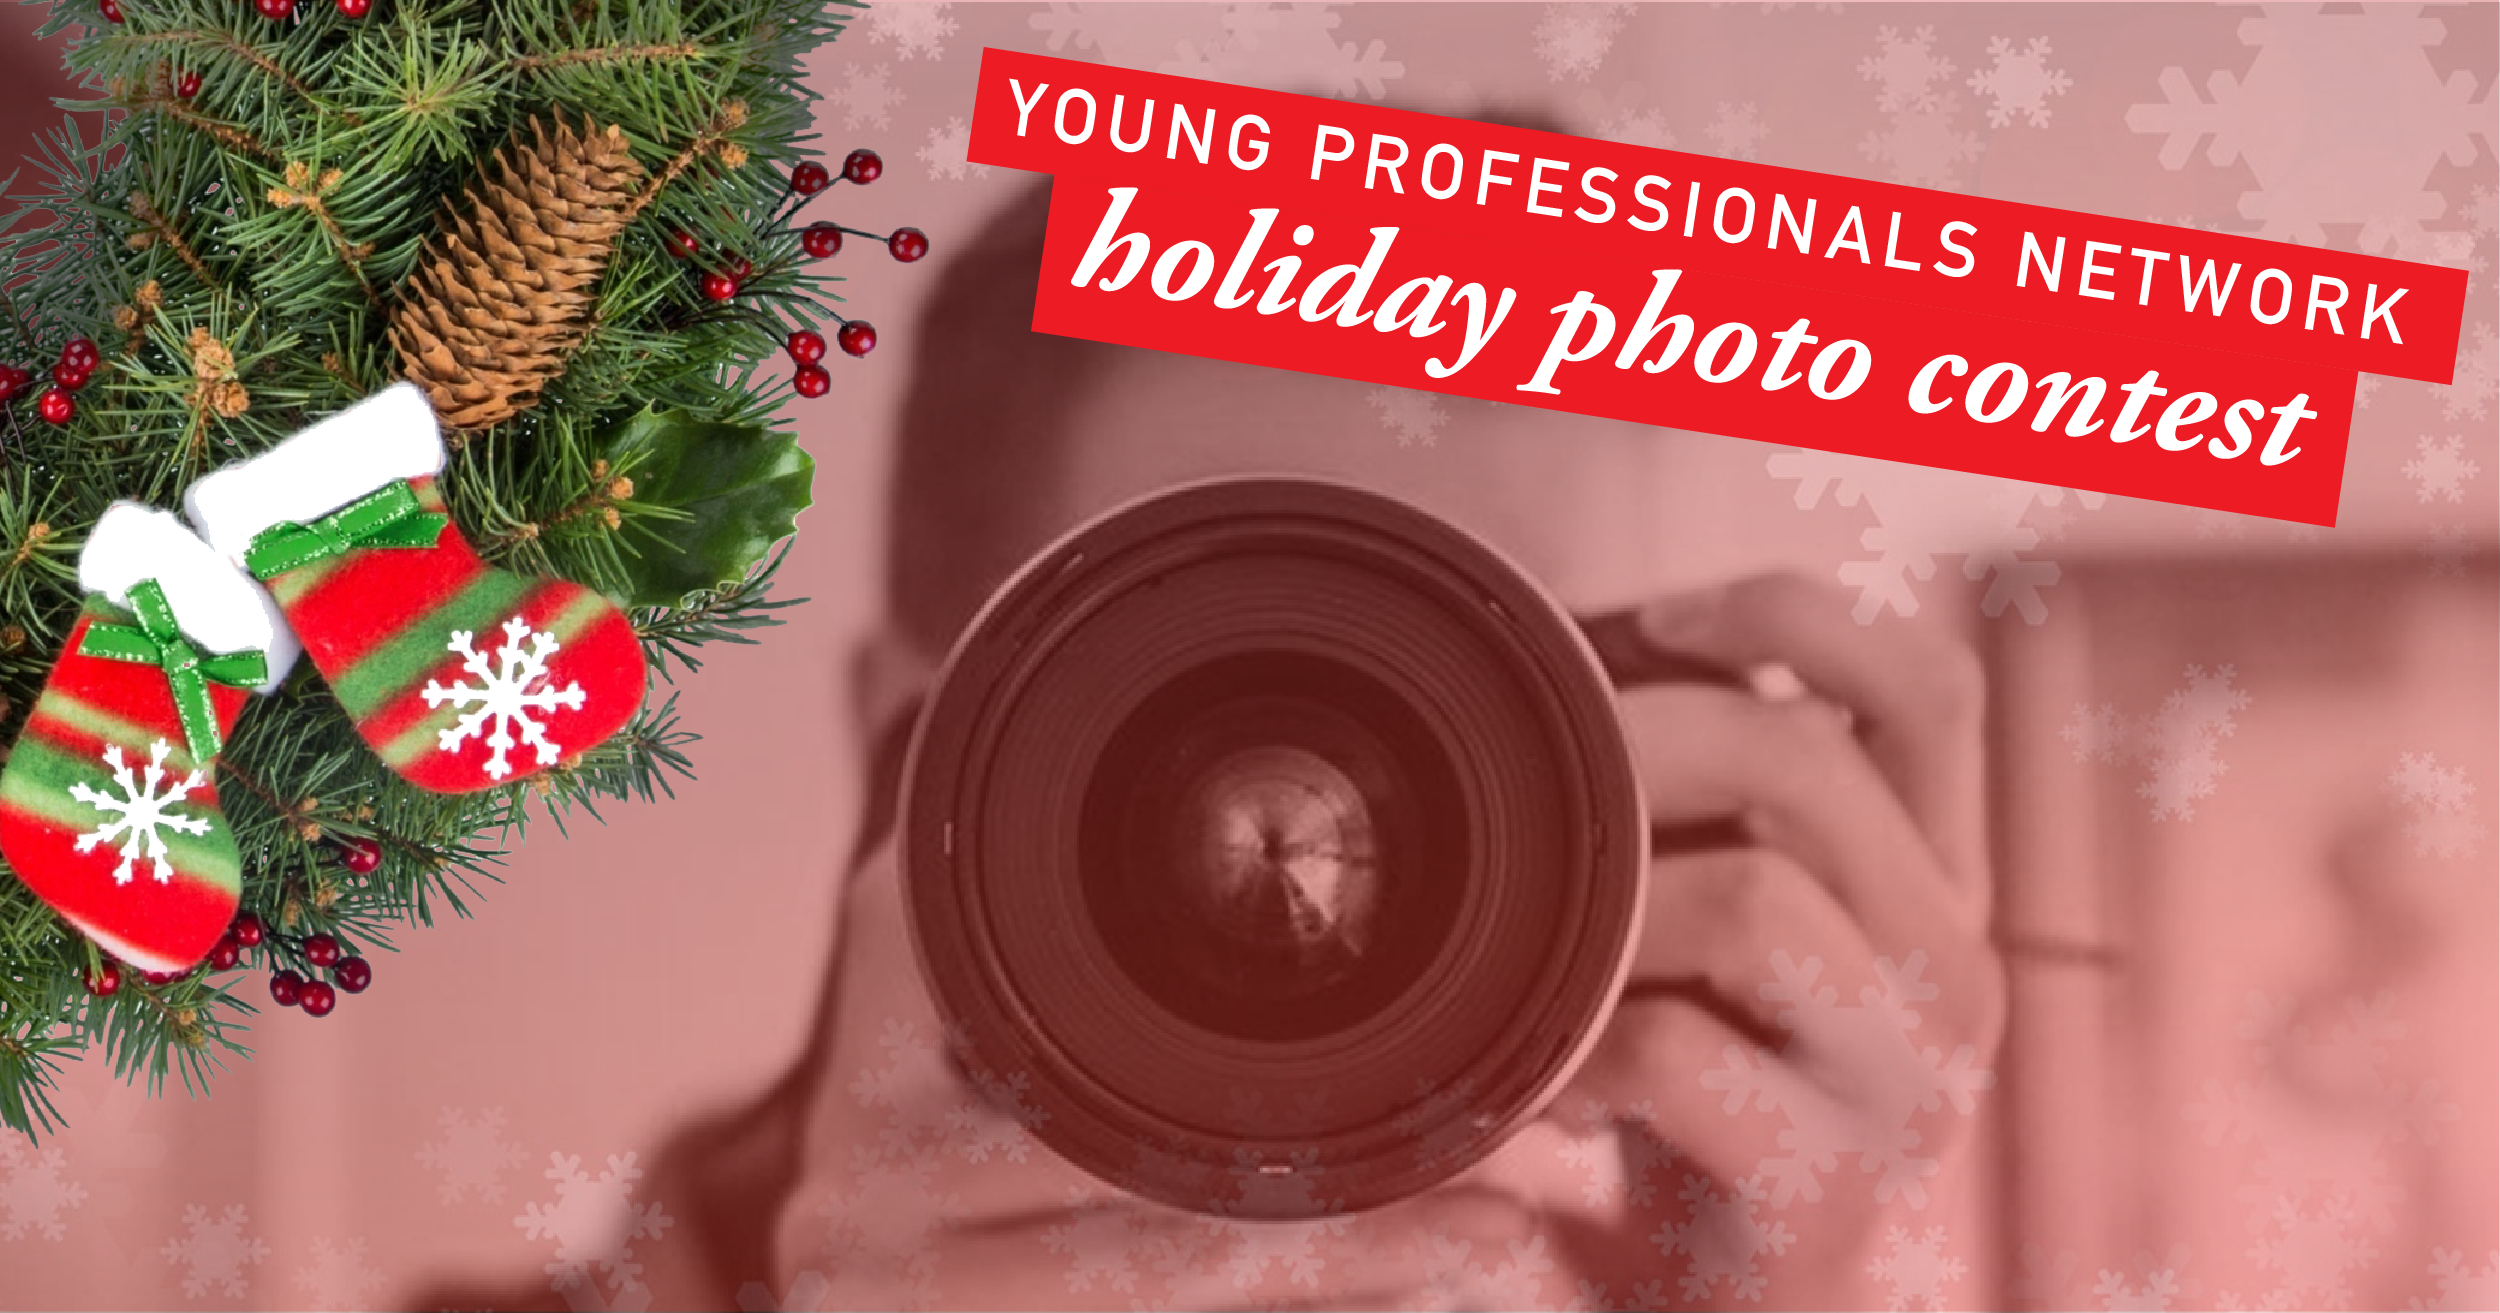 YPN Holiday Photo Contest Winners Announced